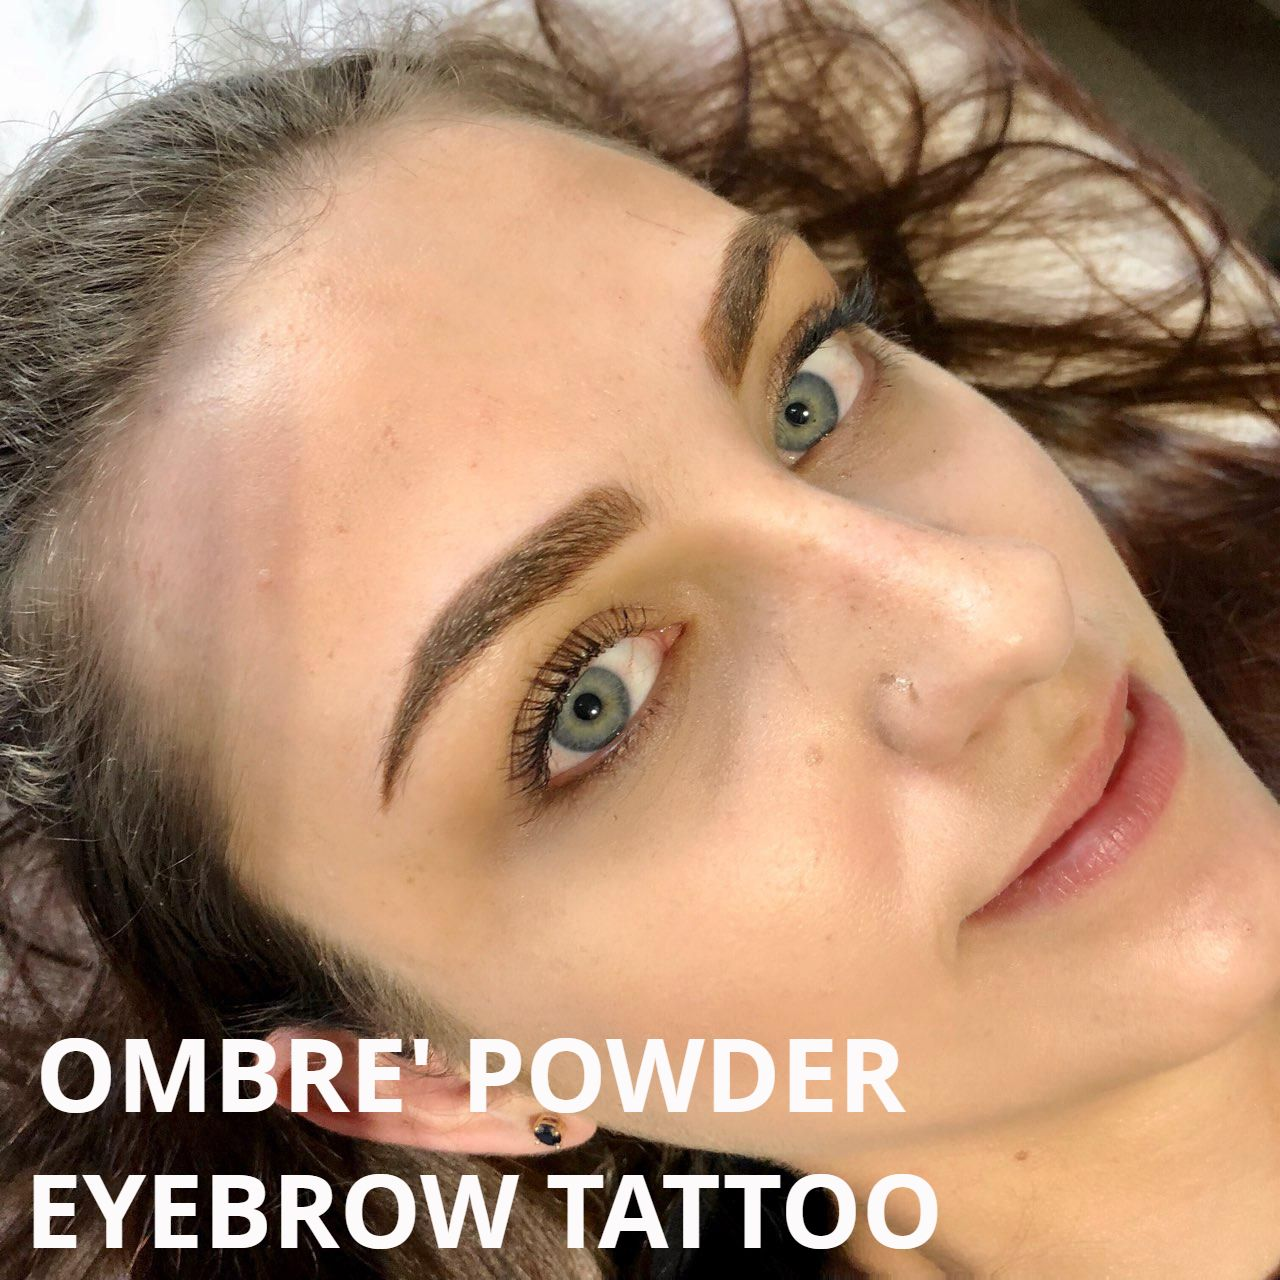 Ombre Brows, Ombre Brows Melbourne, Ombre Brow Tattoo, Ombre Brow Tattoo Melbourne, Best Ombre Brows Melbourne